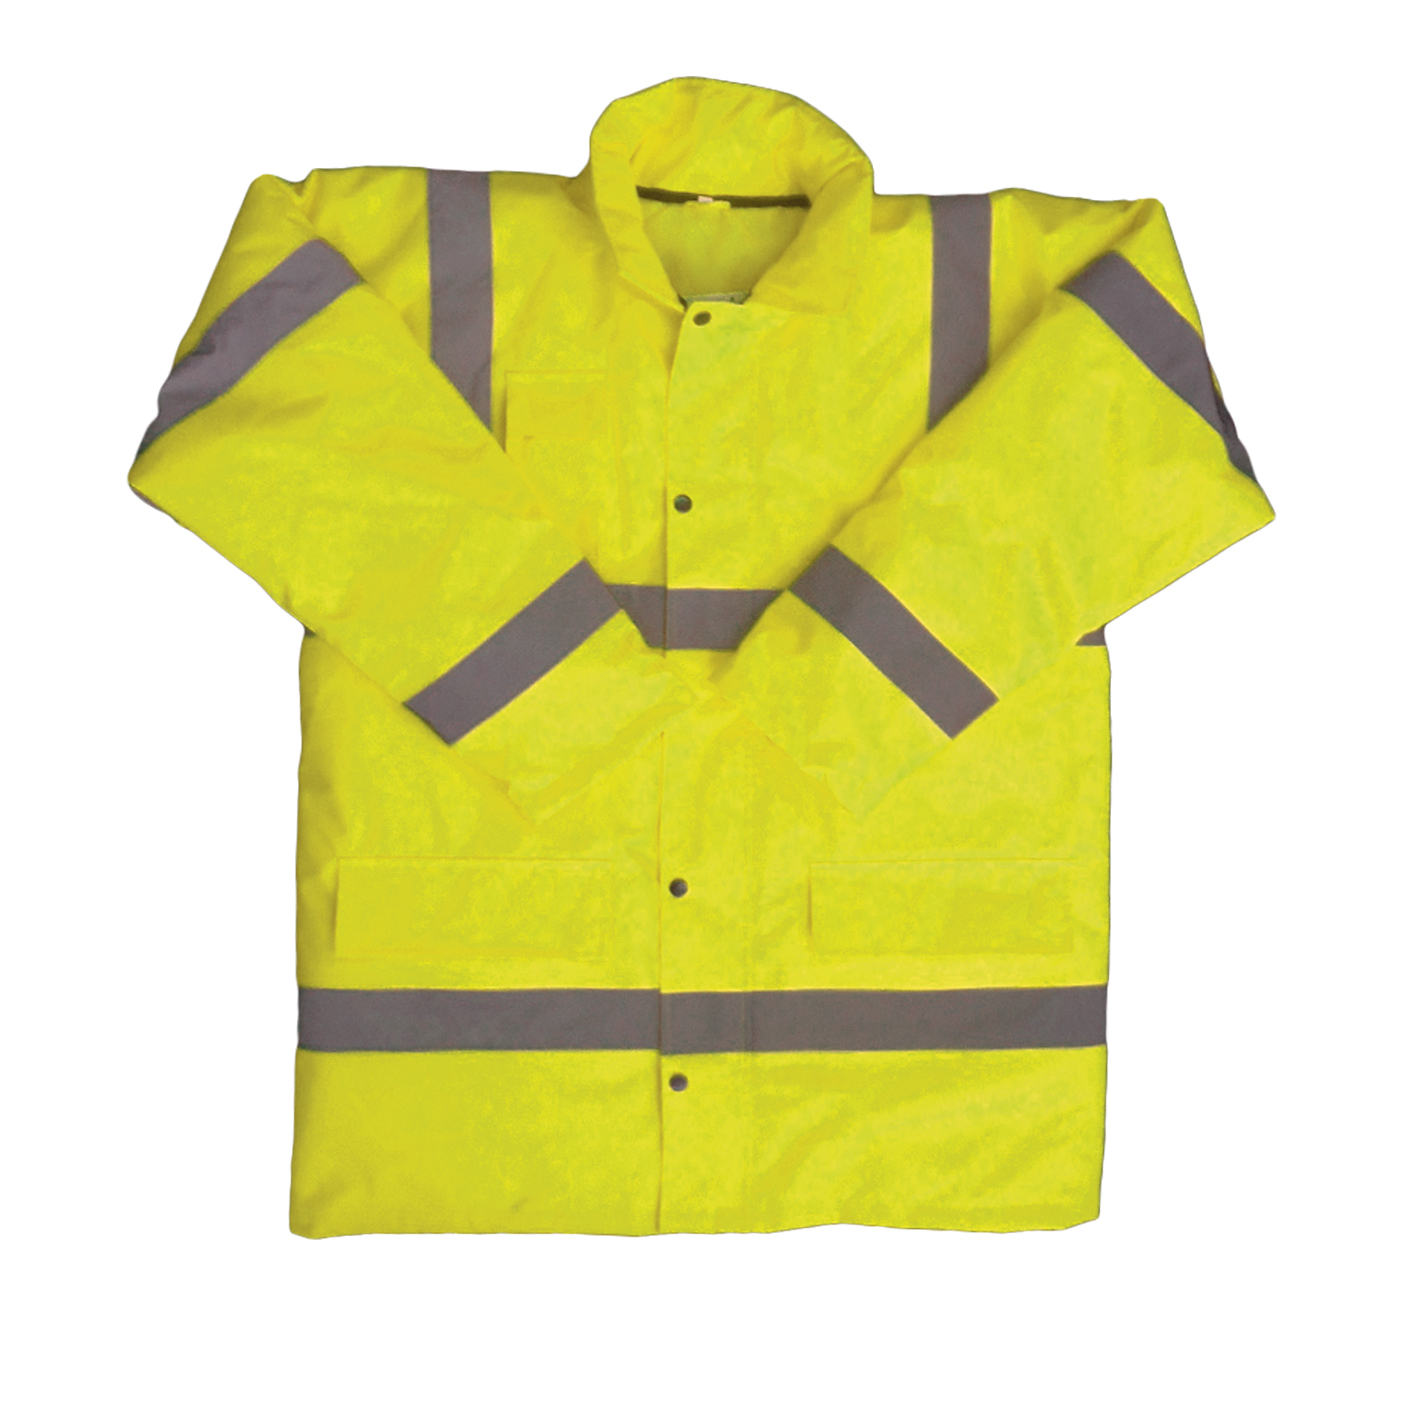 Yellow Hi Vis Jackets